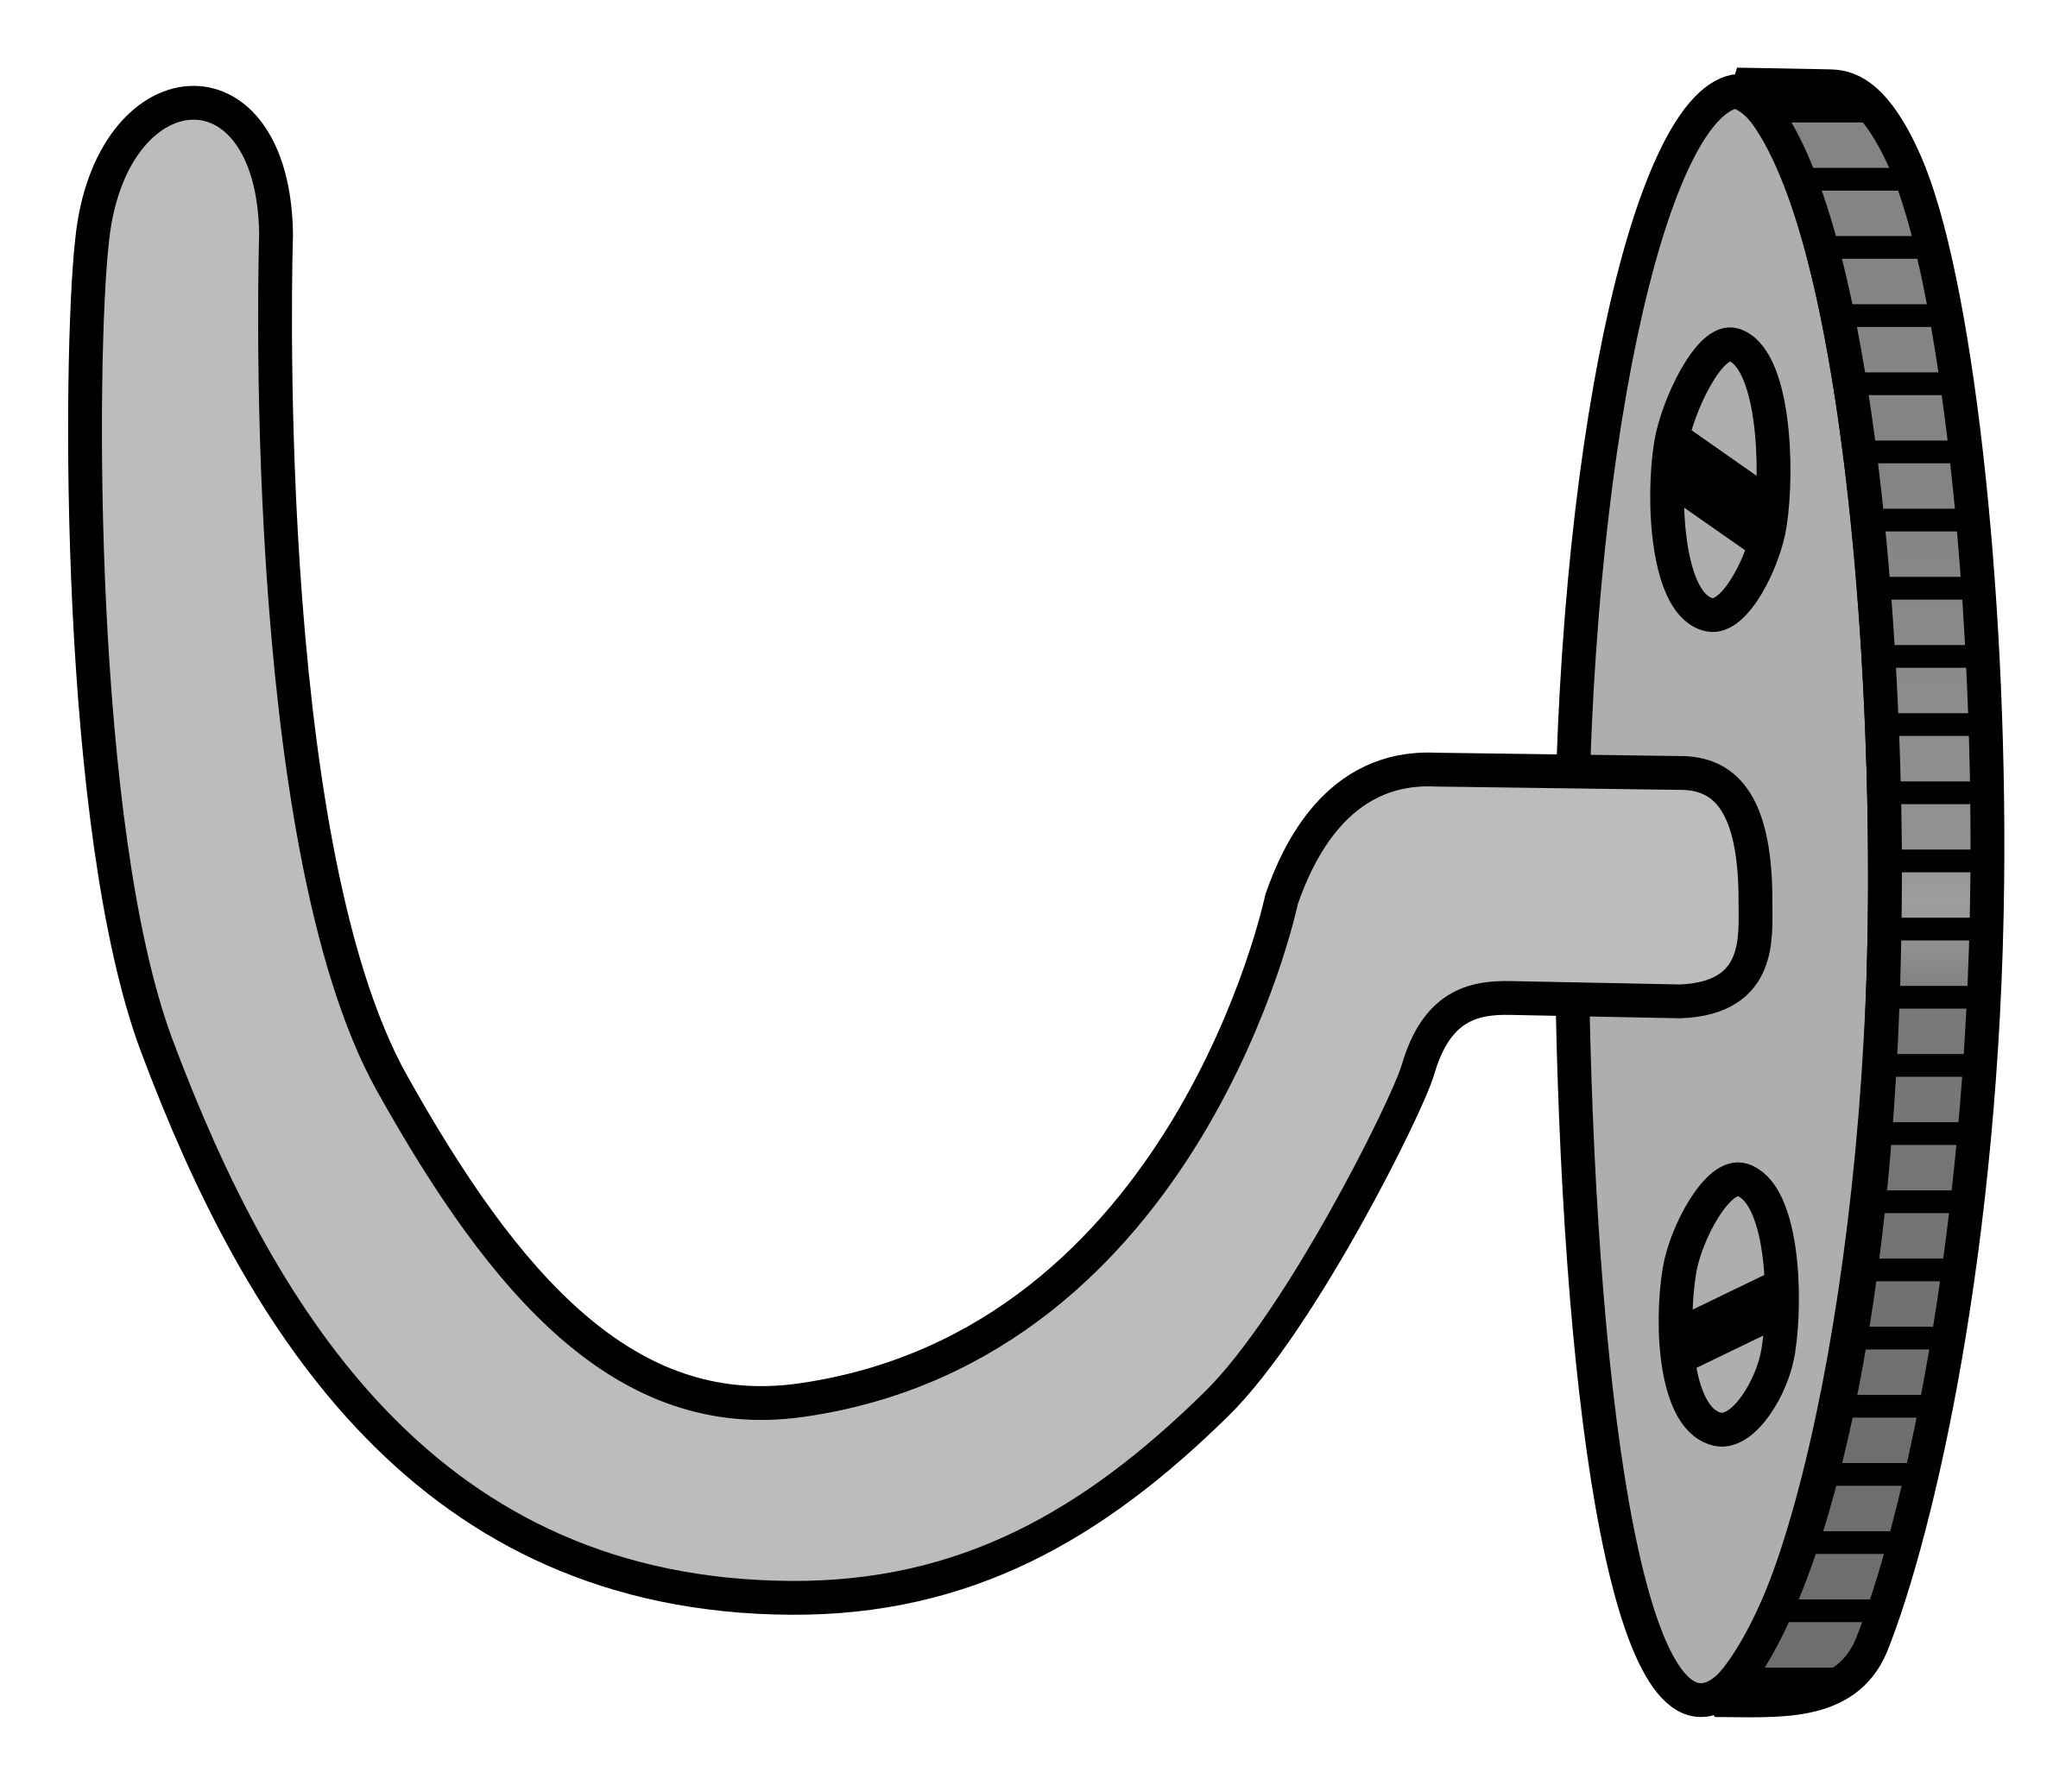 Free Hook Clipart Black And White, Download Free Clip Art.